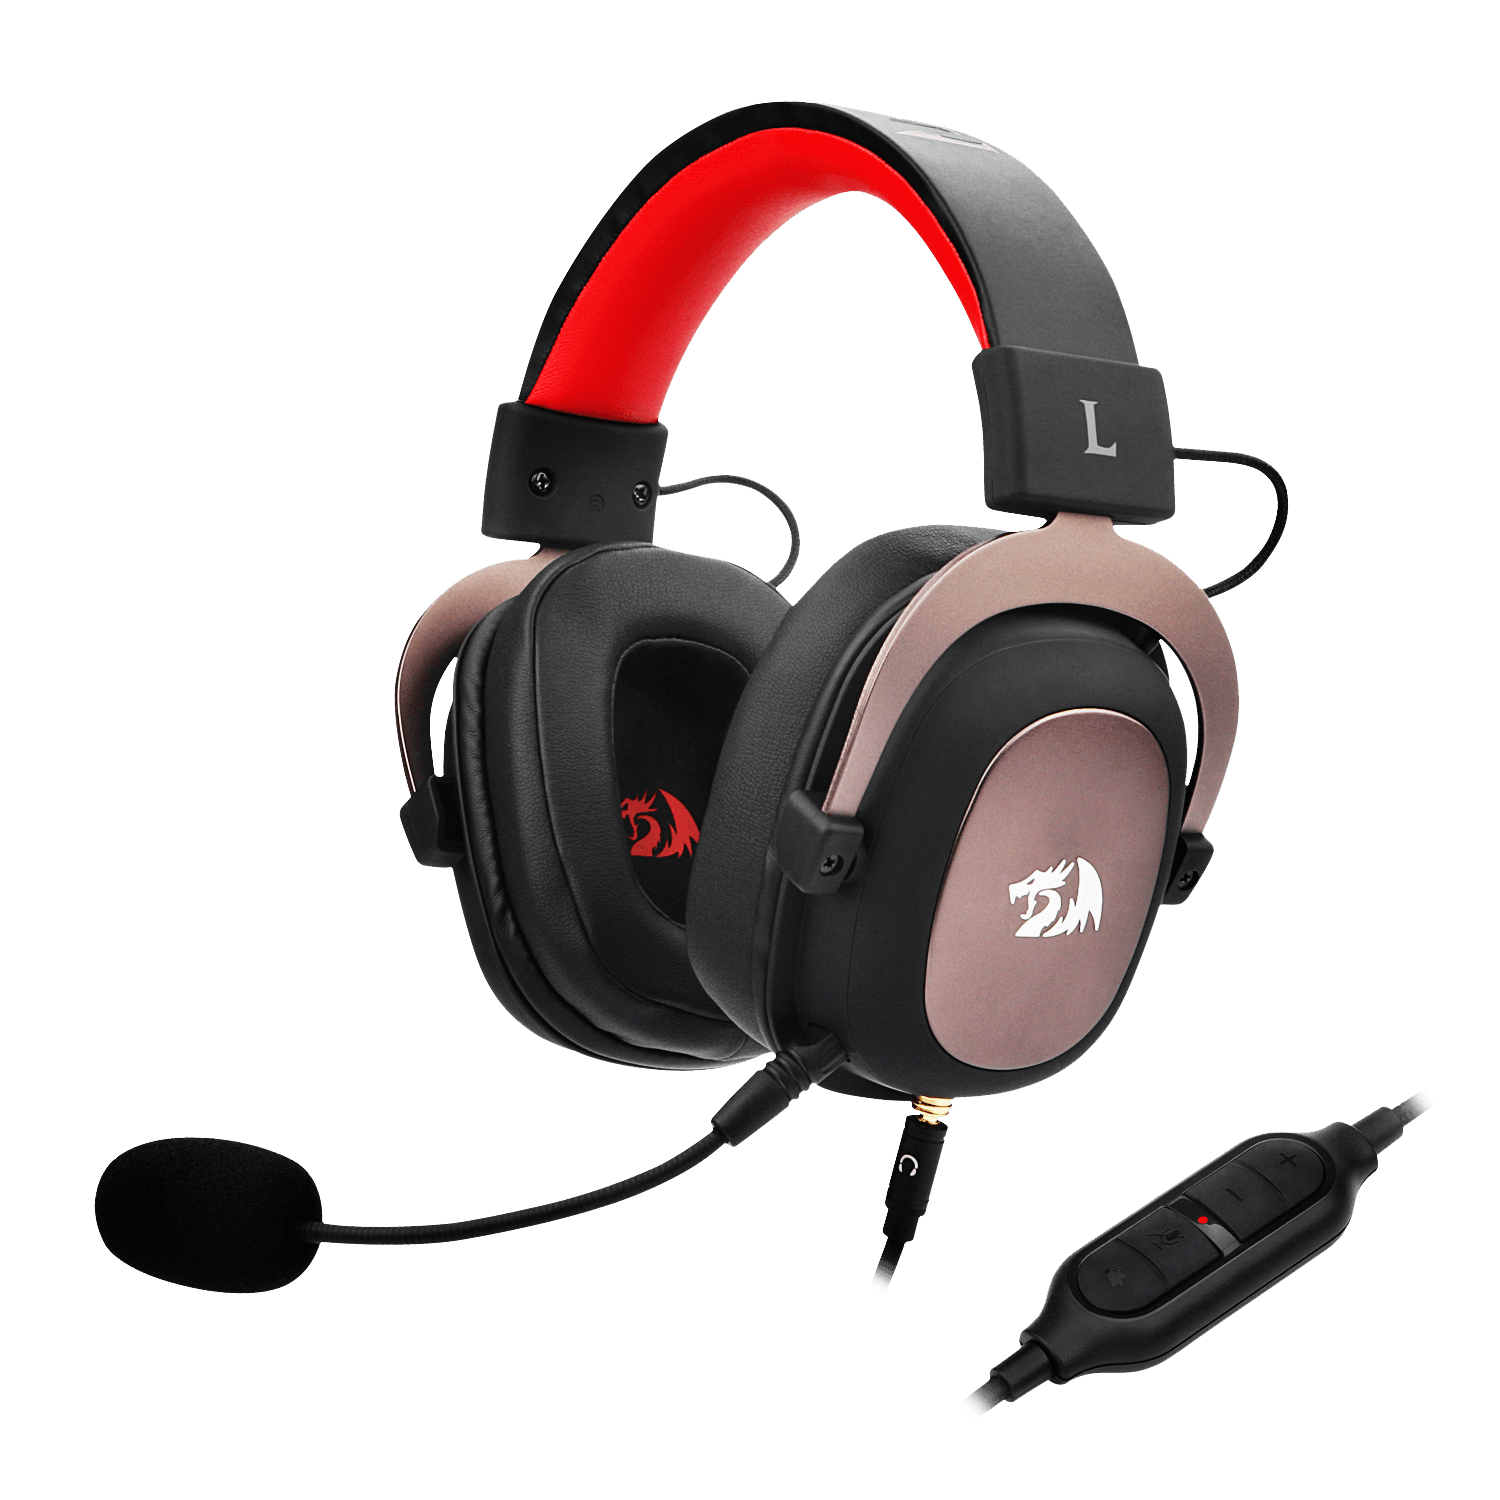 Redragon Zeus H510 7 1 Surround Sound Gaming Headset Best Noise Cancelling Headphones Ps4 Headset Xbox Headset Redragonshop